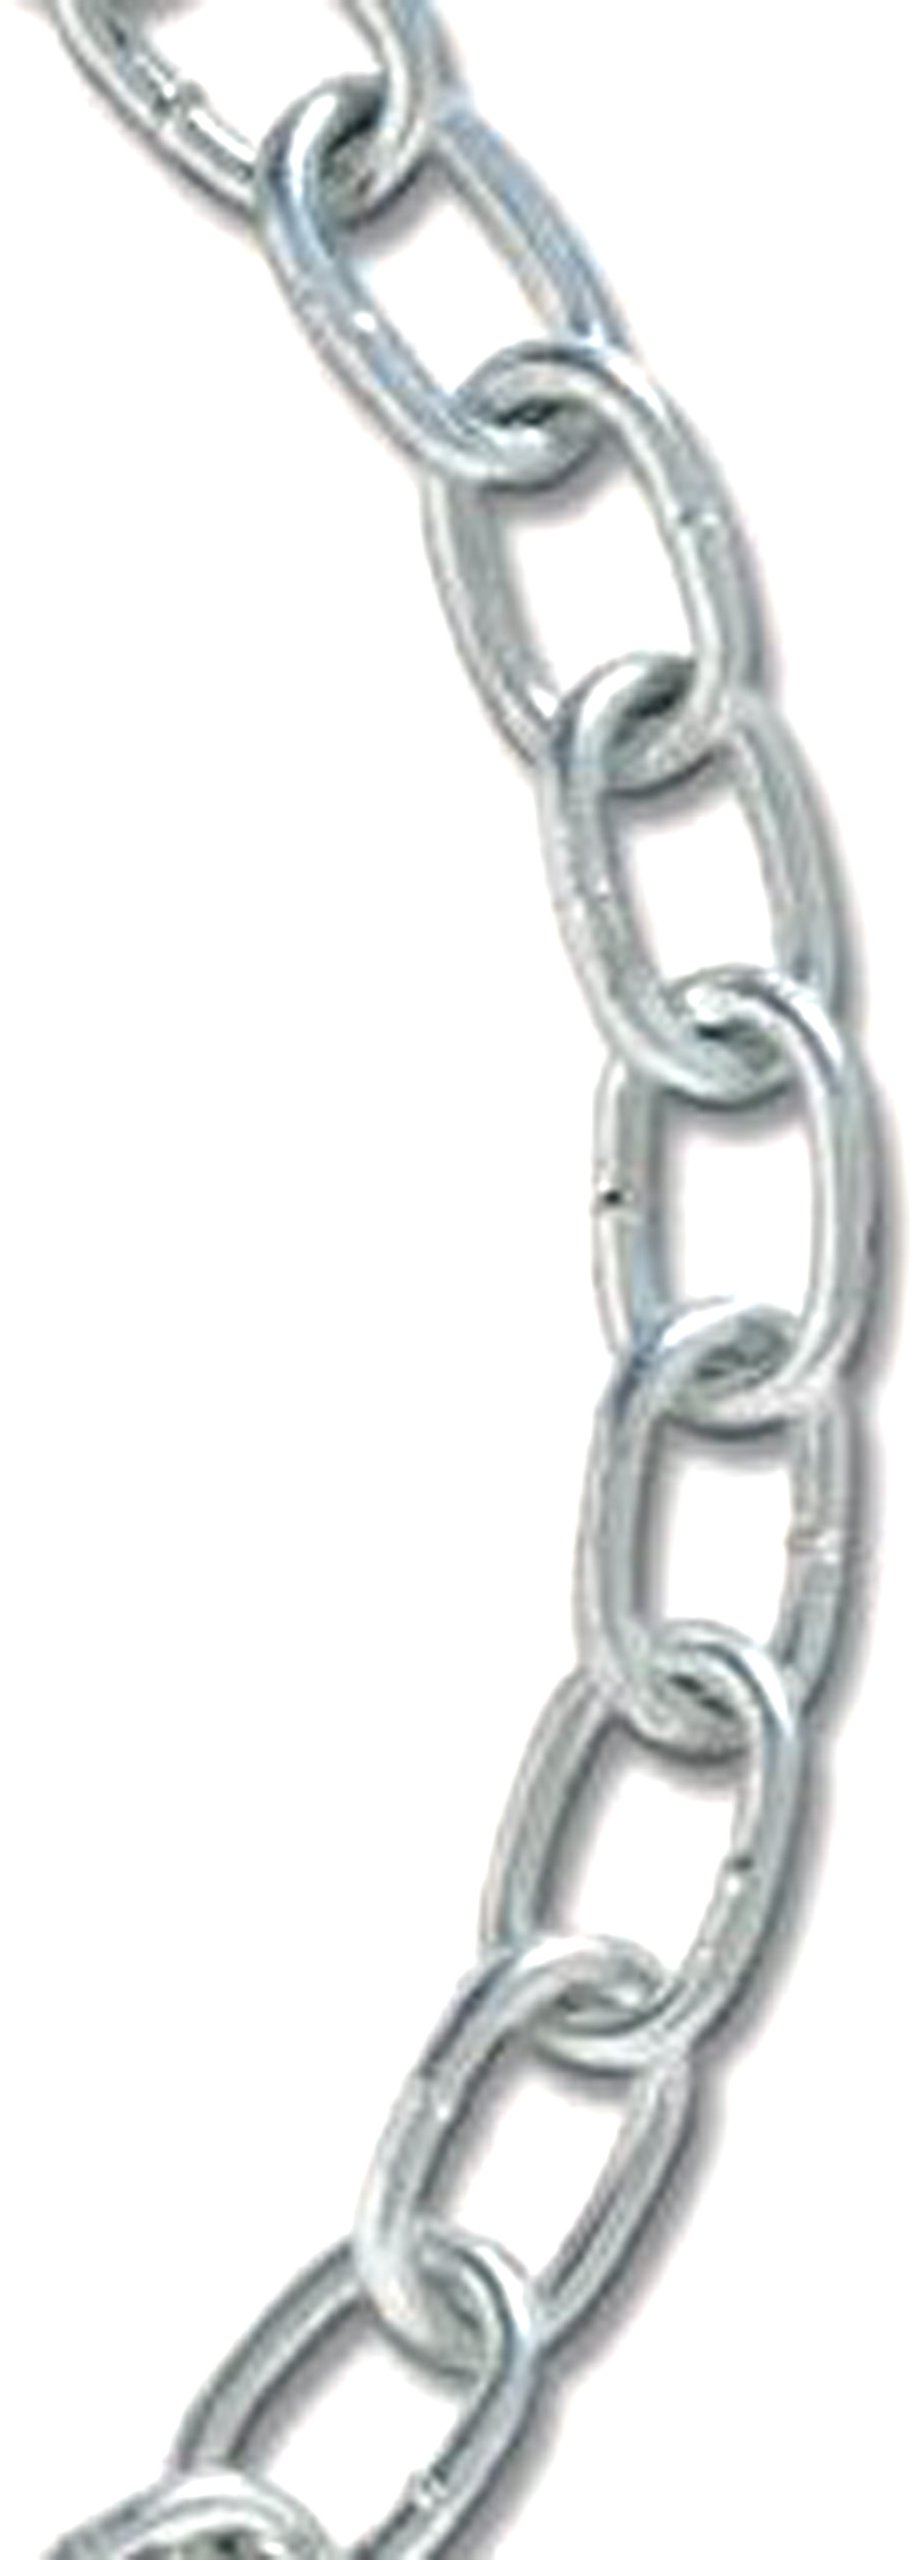 Koch 728926 2/0 by 120-Feet Passing Link Chain, Zinc Plated